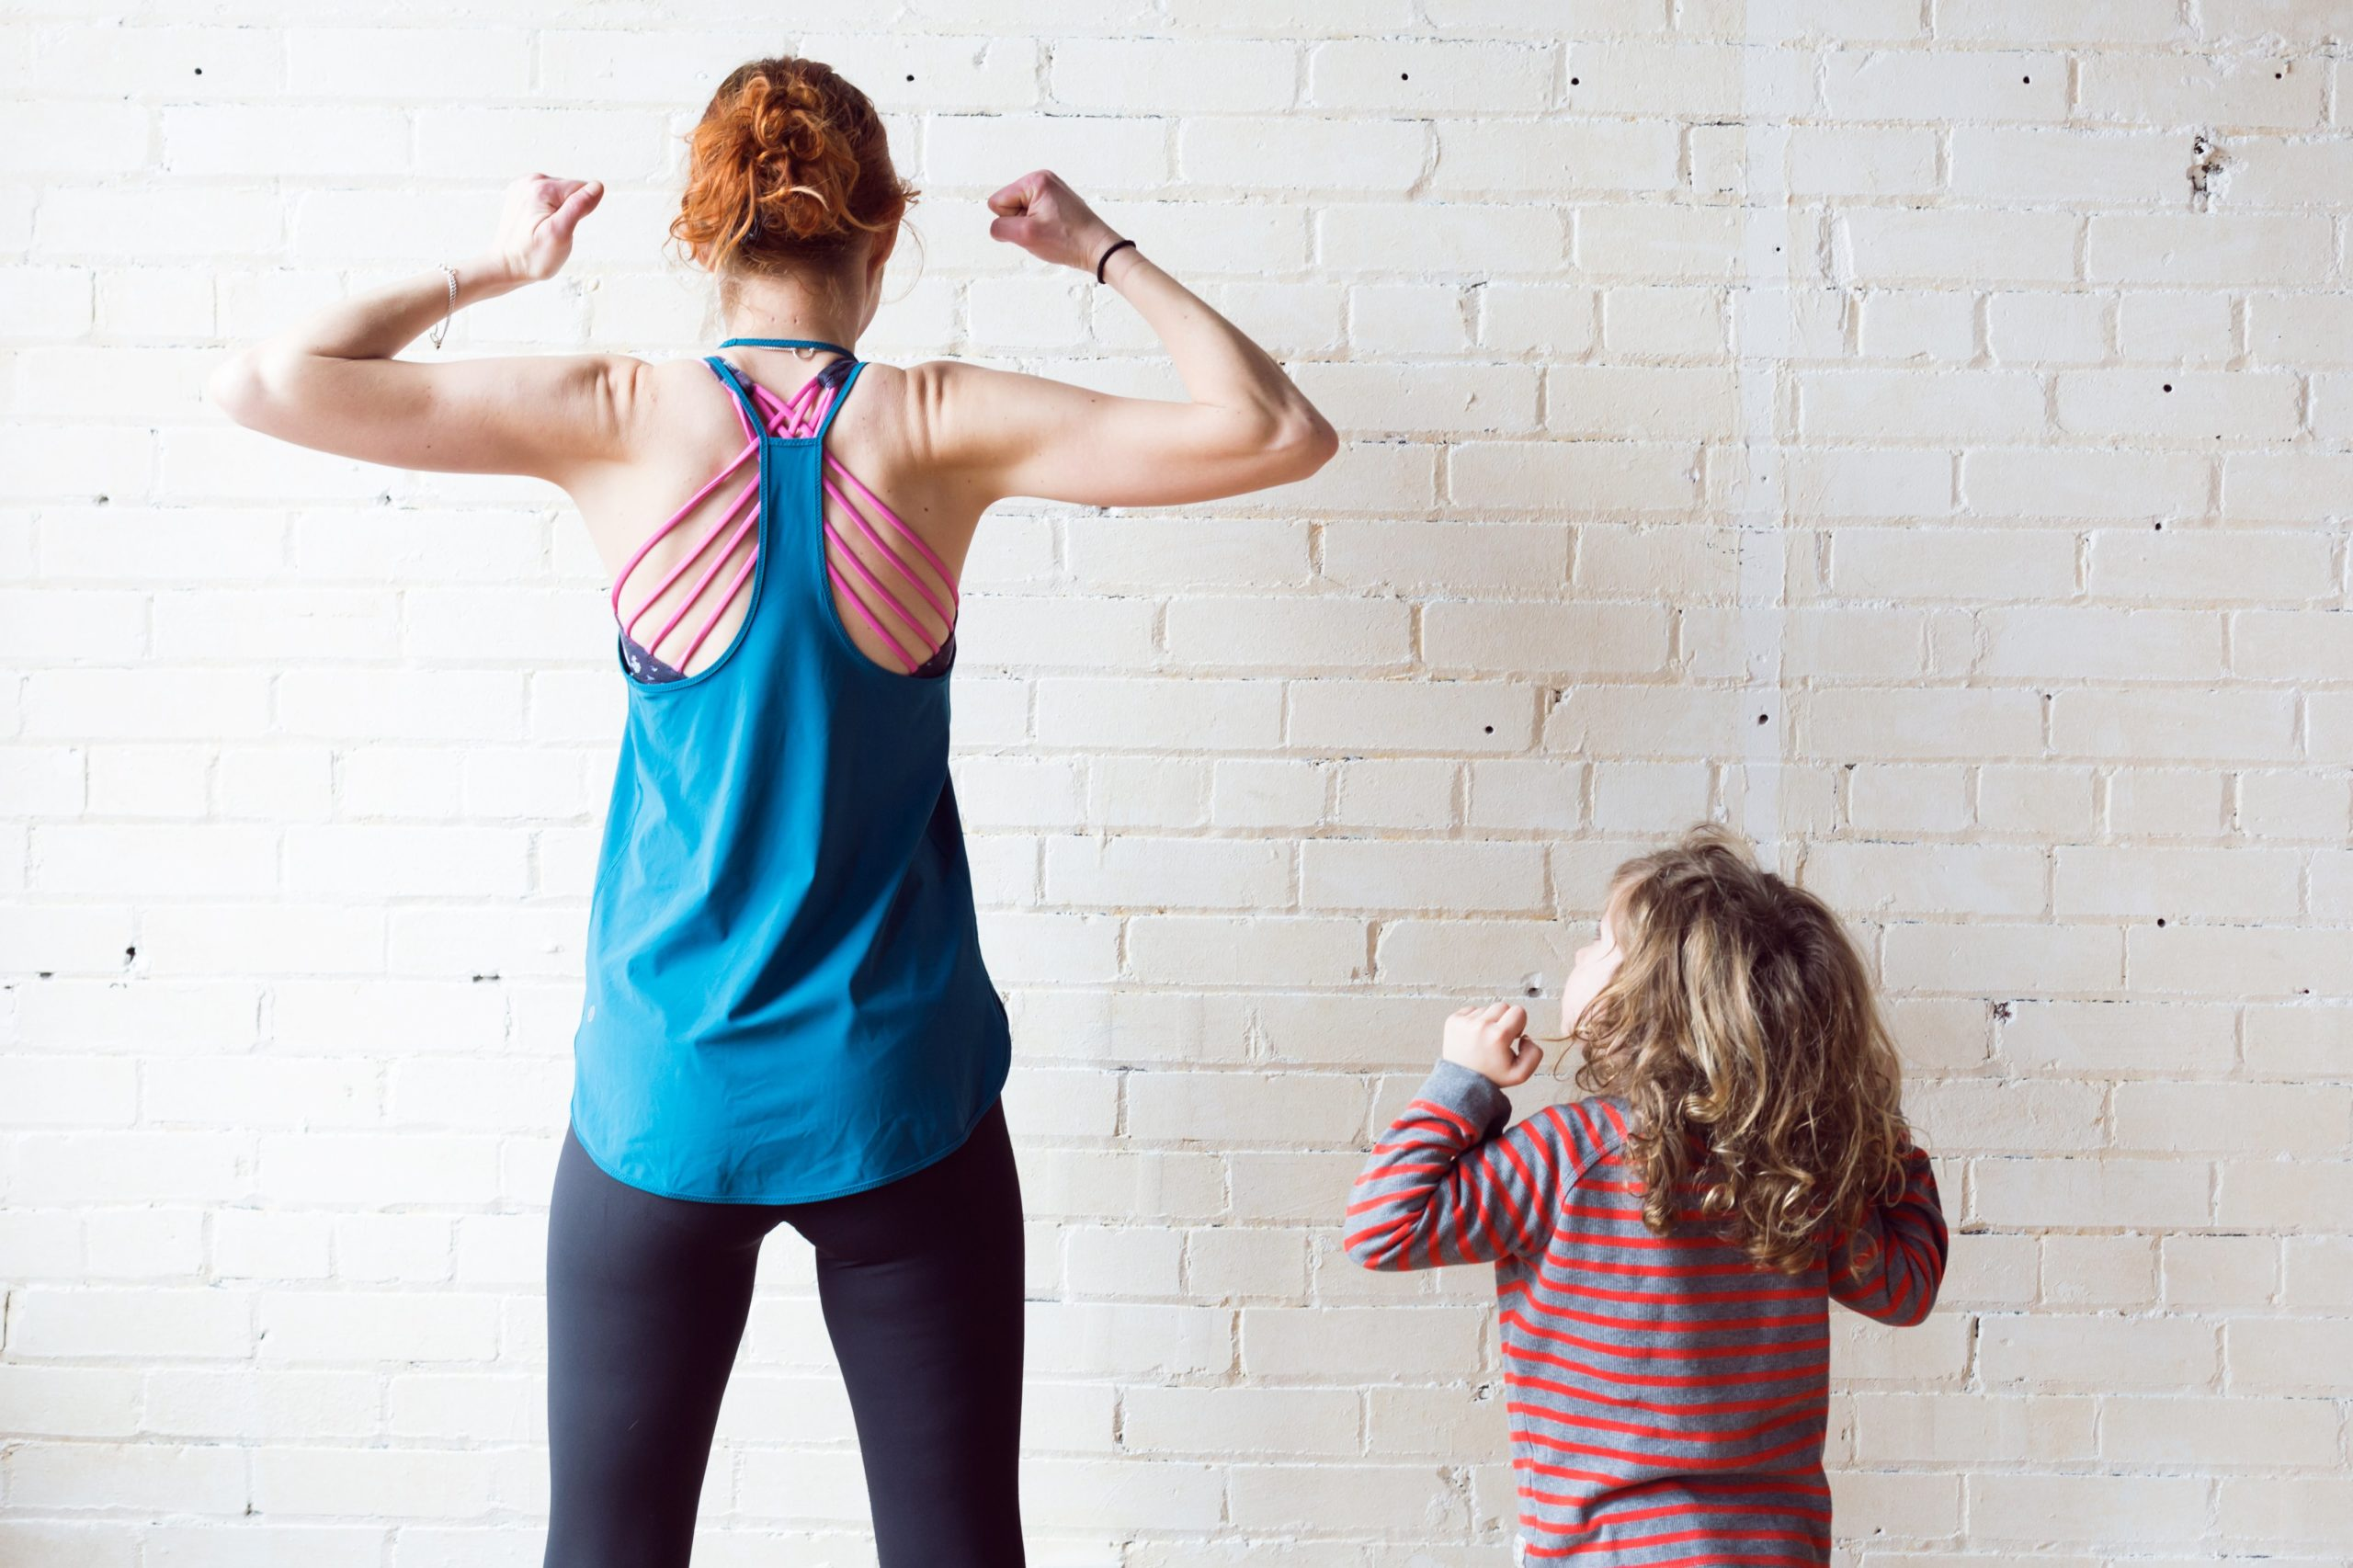 woman-and-boy-muscle